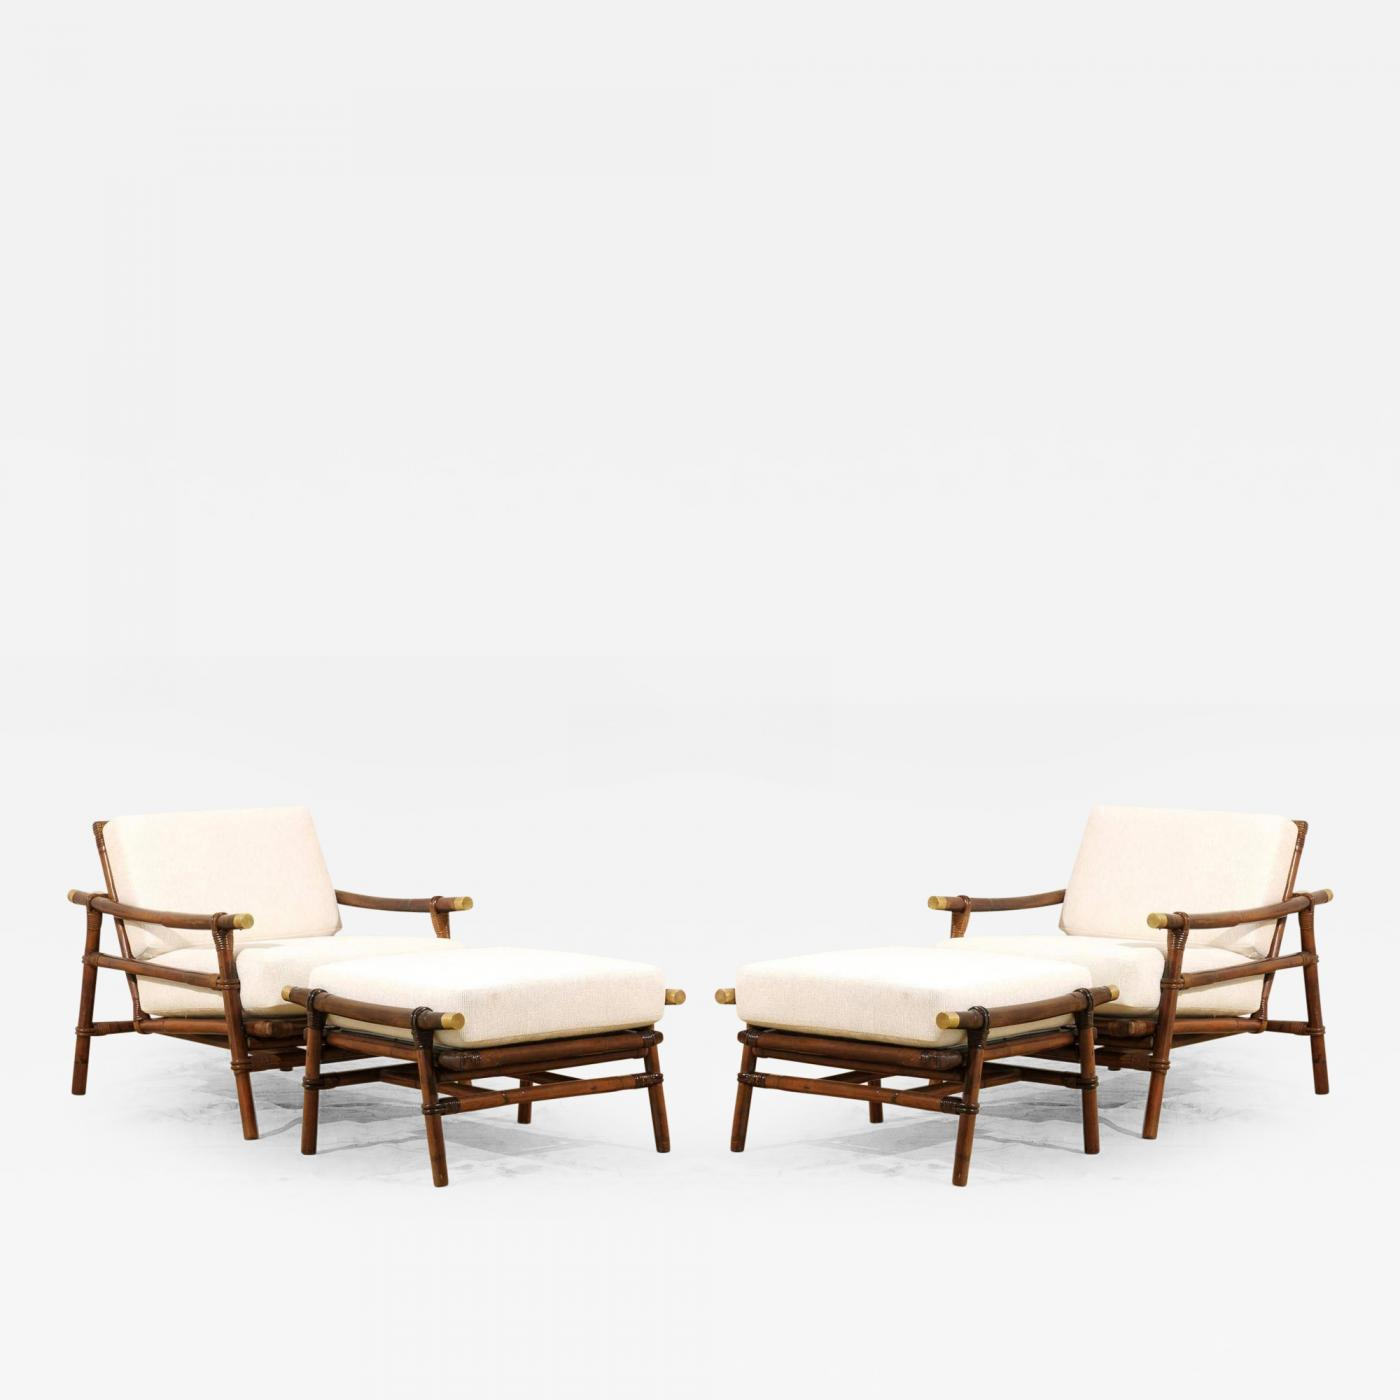 John Wisner Superb Pair of Campaign Lounge Chairs and Ottomans